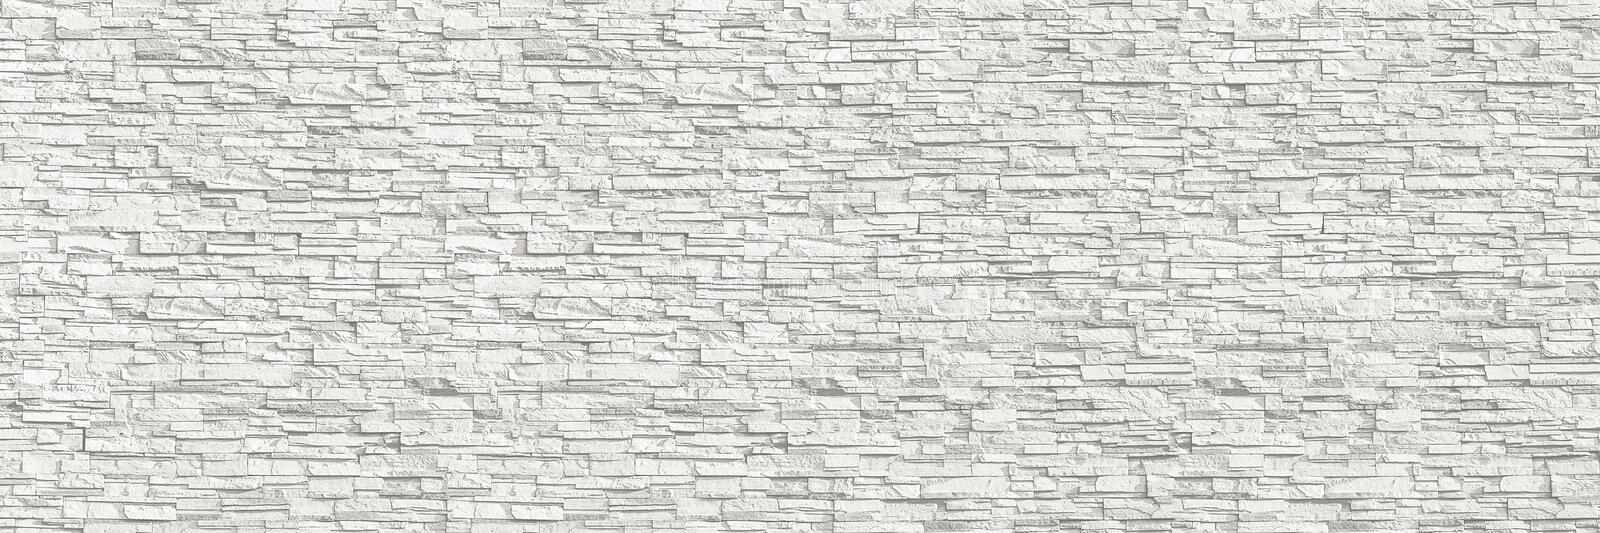 Horizontal modern white brick wall for pattern and background.  royalty free stock photos